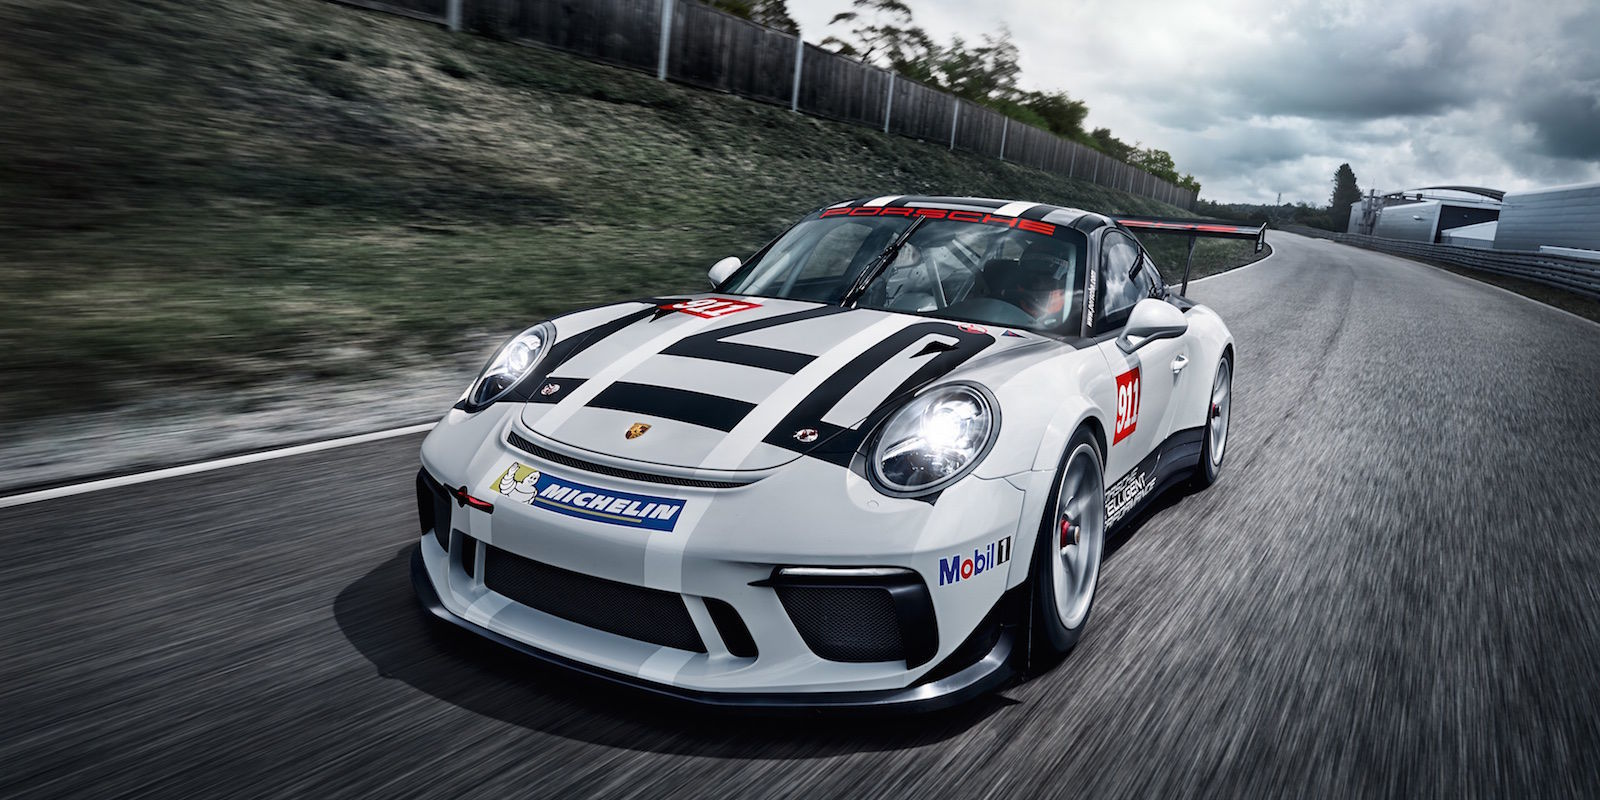 2017 porsche 911 gt3 cup racecar is a full motorcycle lighter than a gt3 rs pdk autoevolution. Black Bedroom Furniture Sets. Home Design Ideas